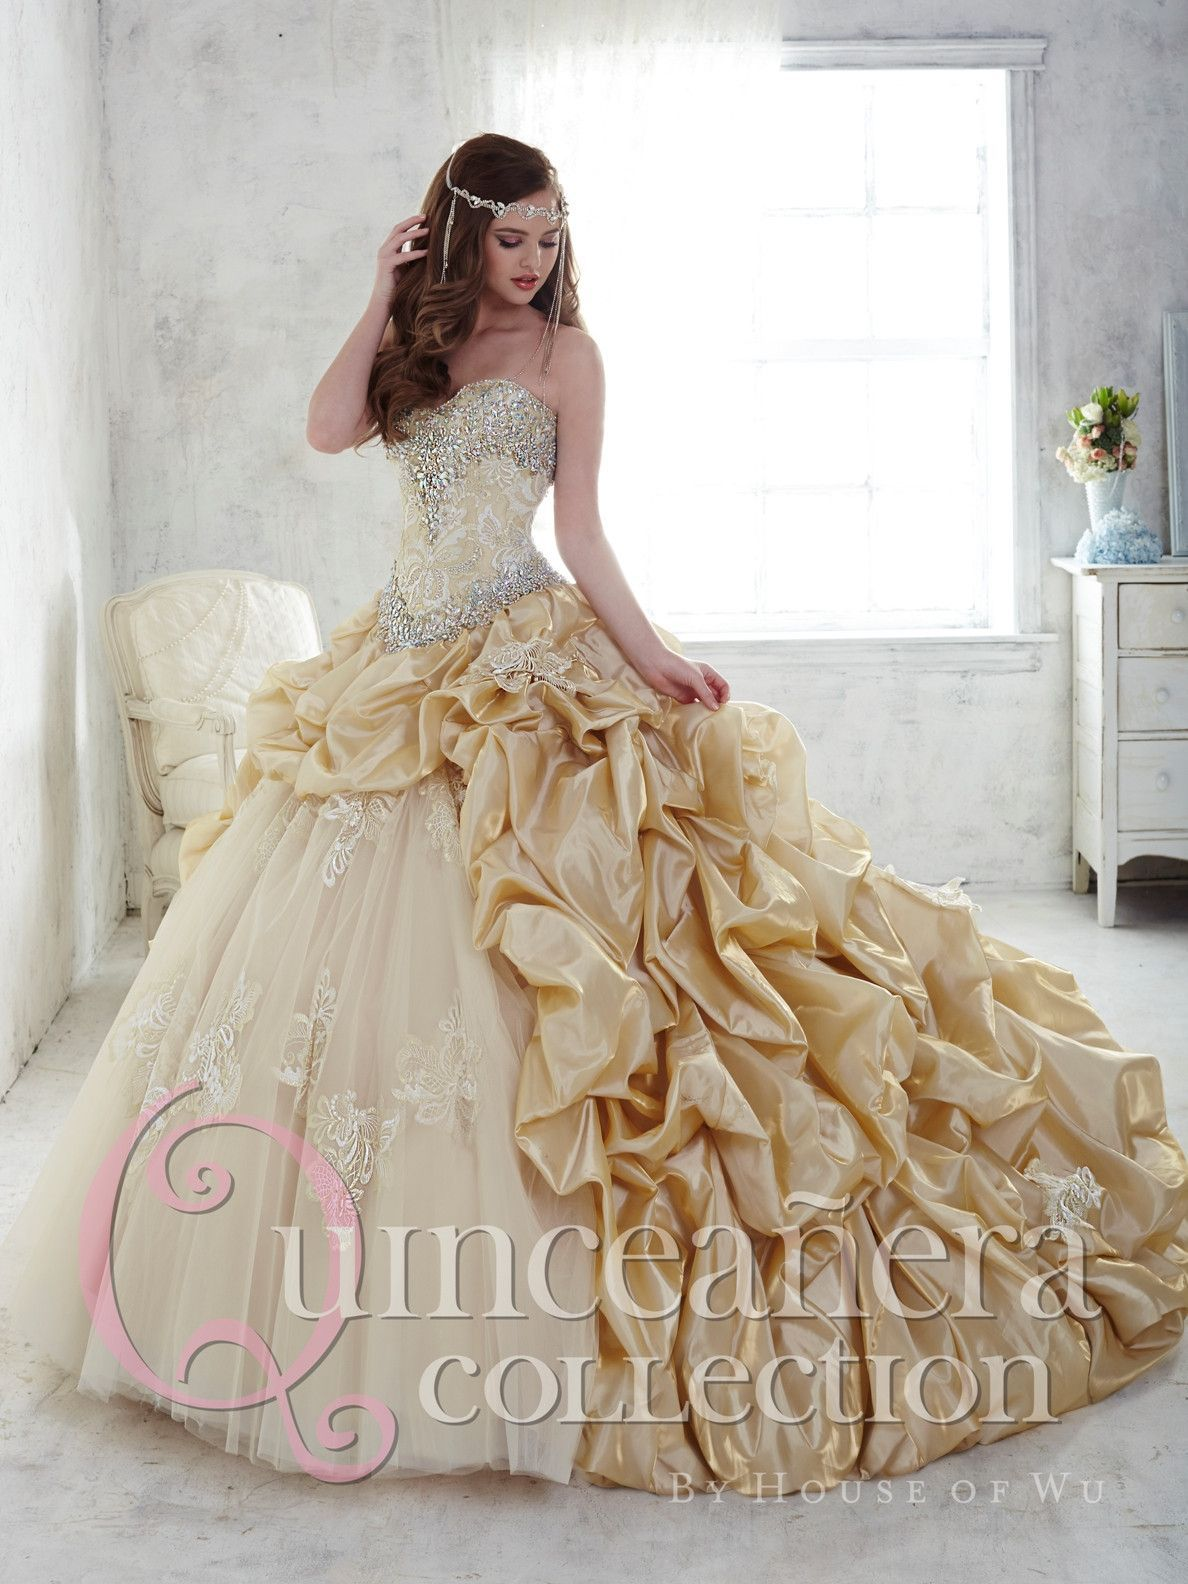 House of wu quinceanera dress style sweet ball gowns and